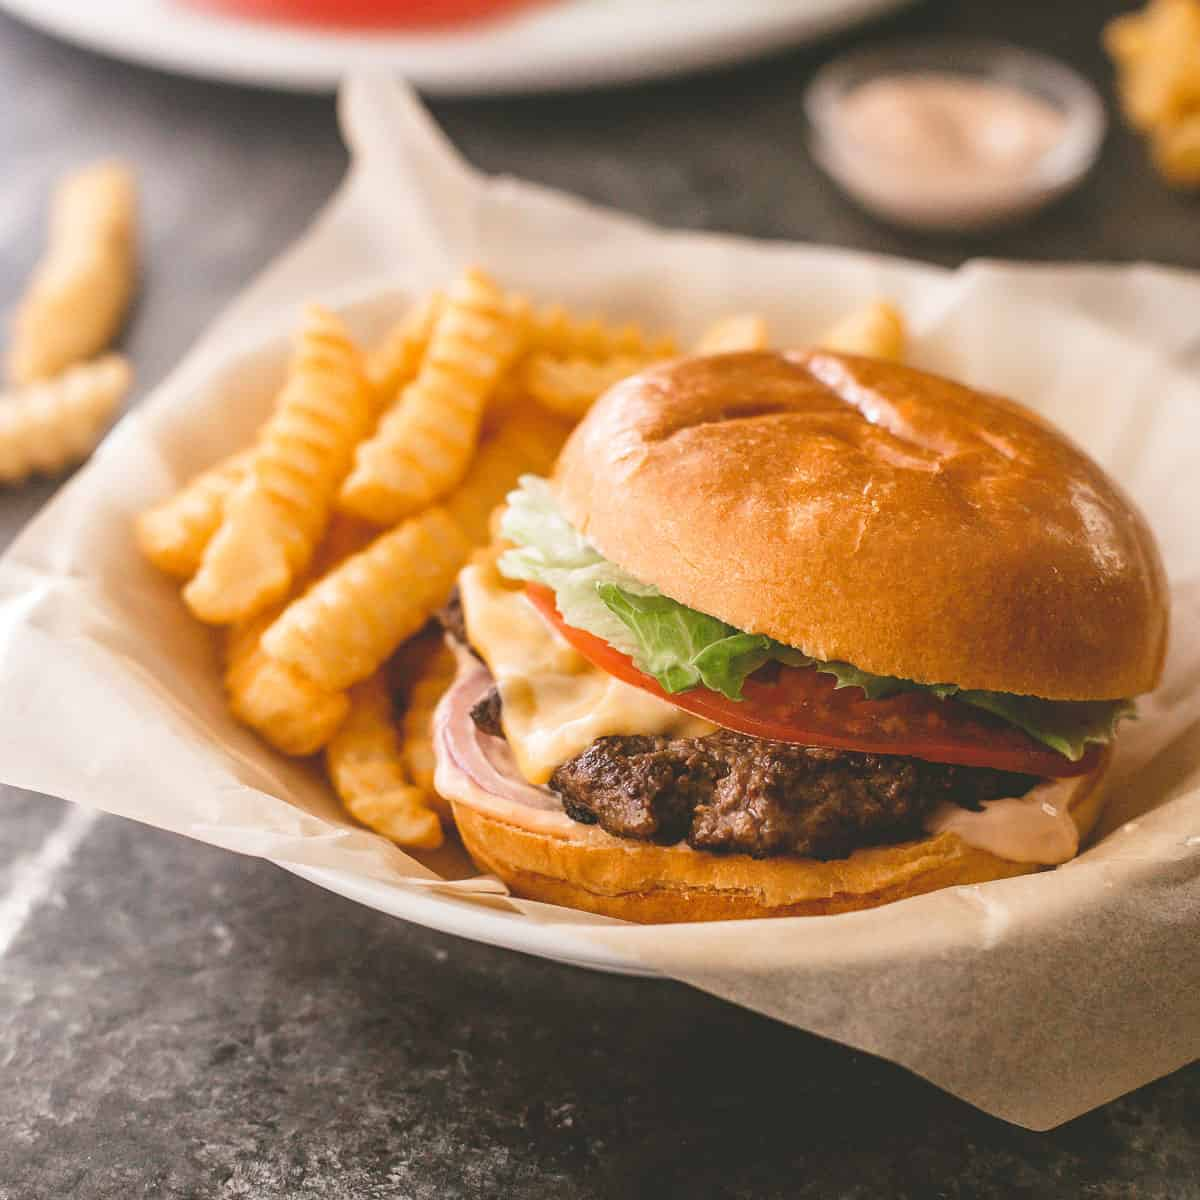 burger and fries in a paper lined basket